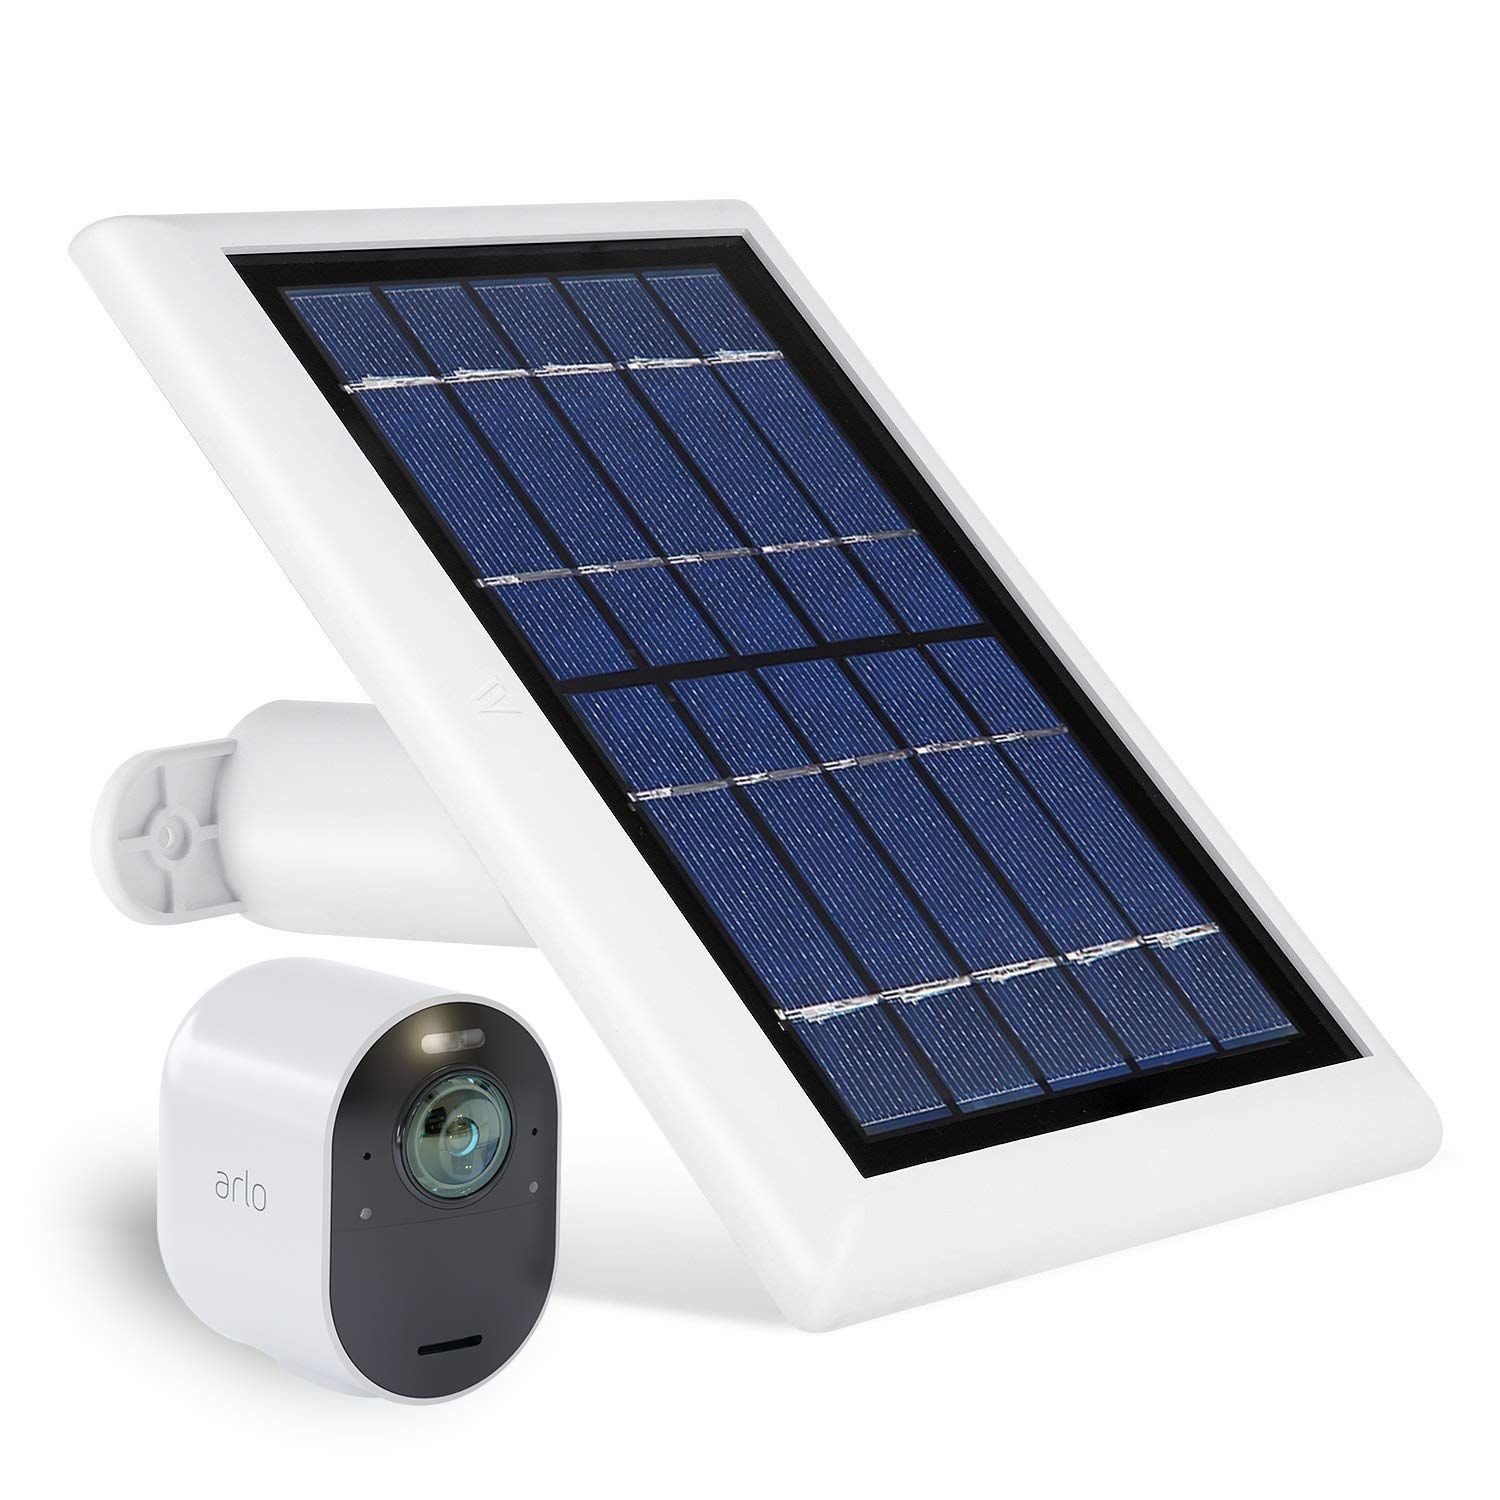 Solar Panel Compatible with Arlo Ultra - Power Your Arlo Surveillance Camera continuously (White)